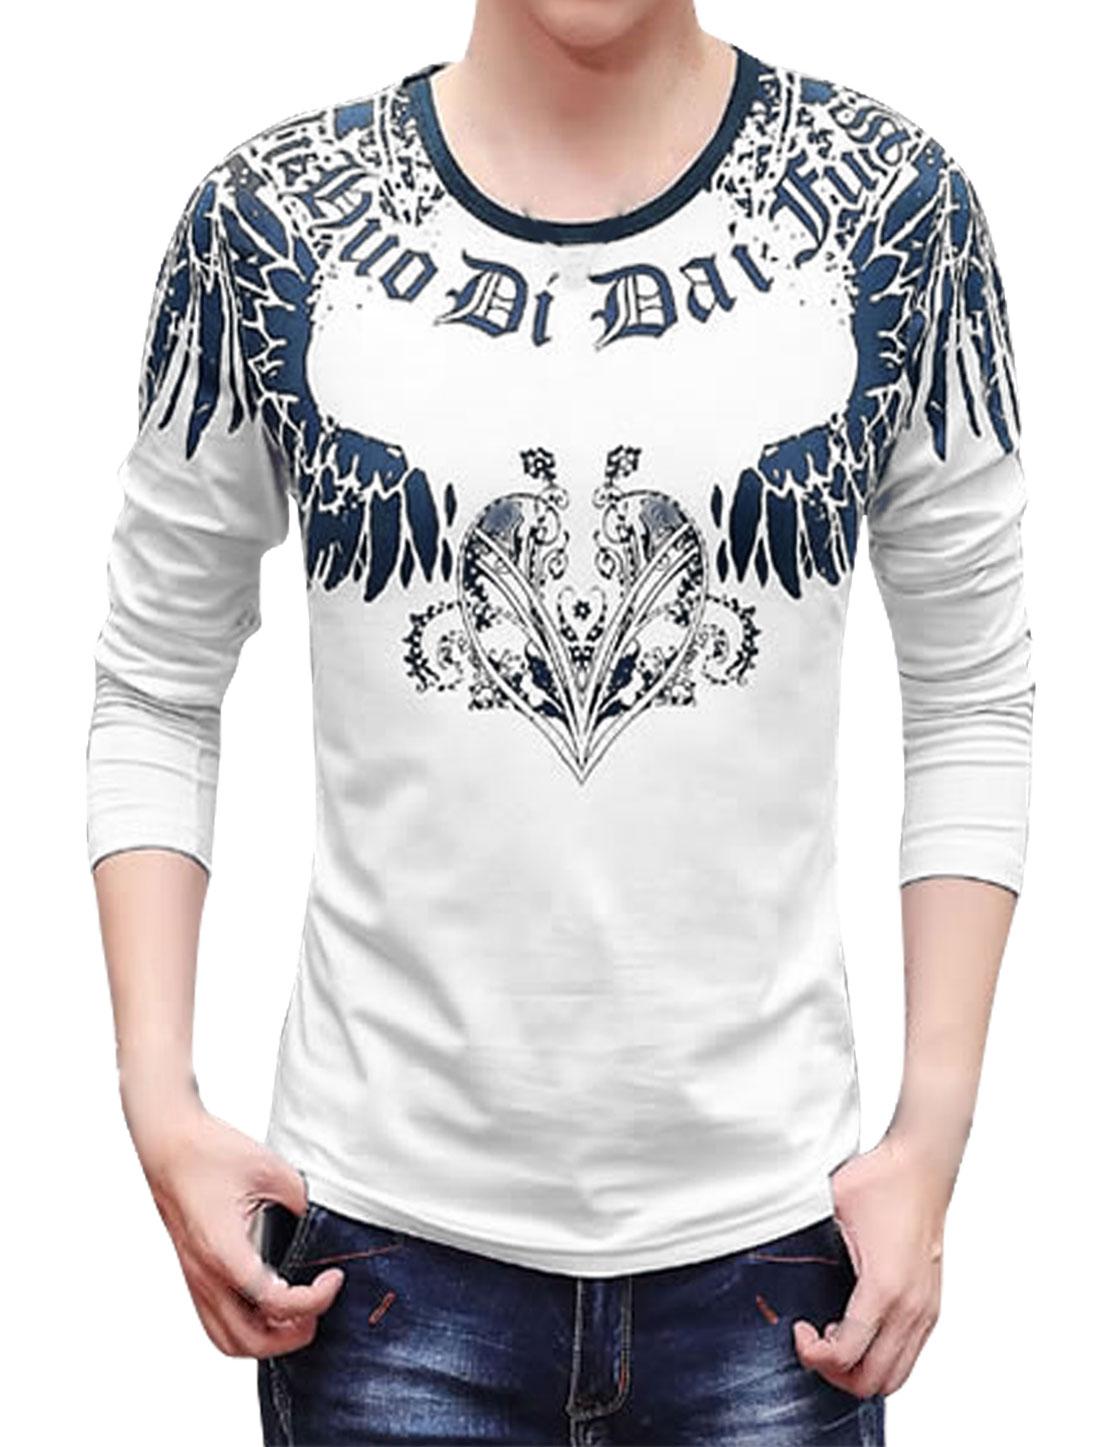 Men Long Sleeves Novelty Slim Fit Tee Shirt White S